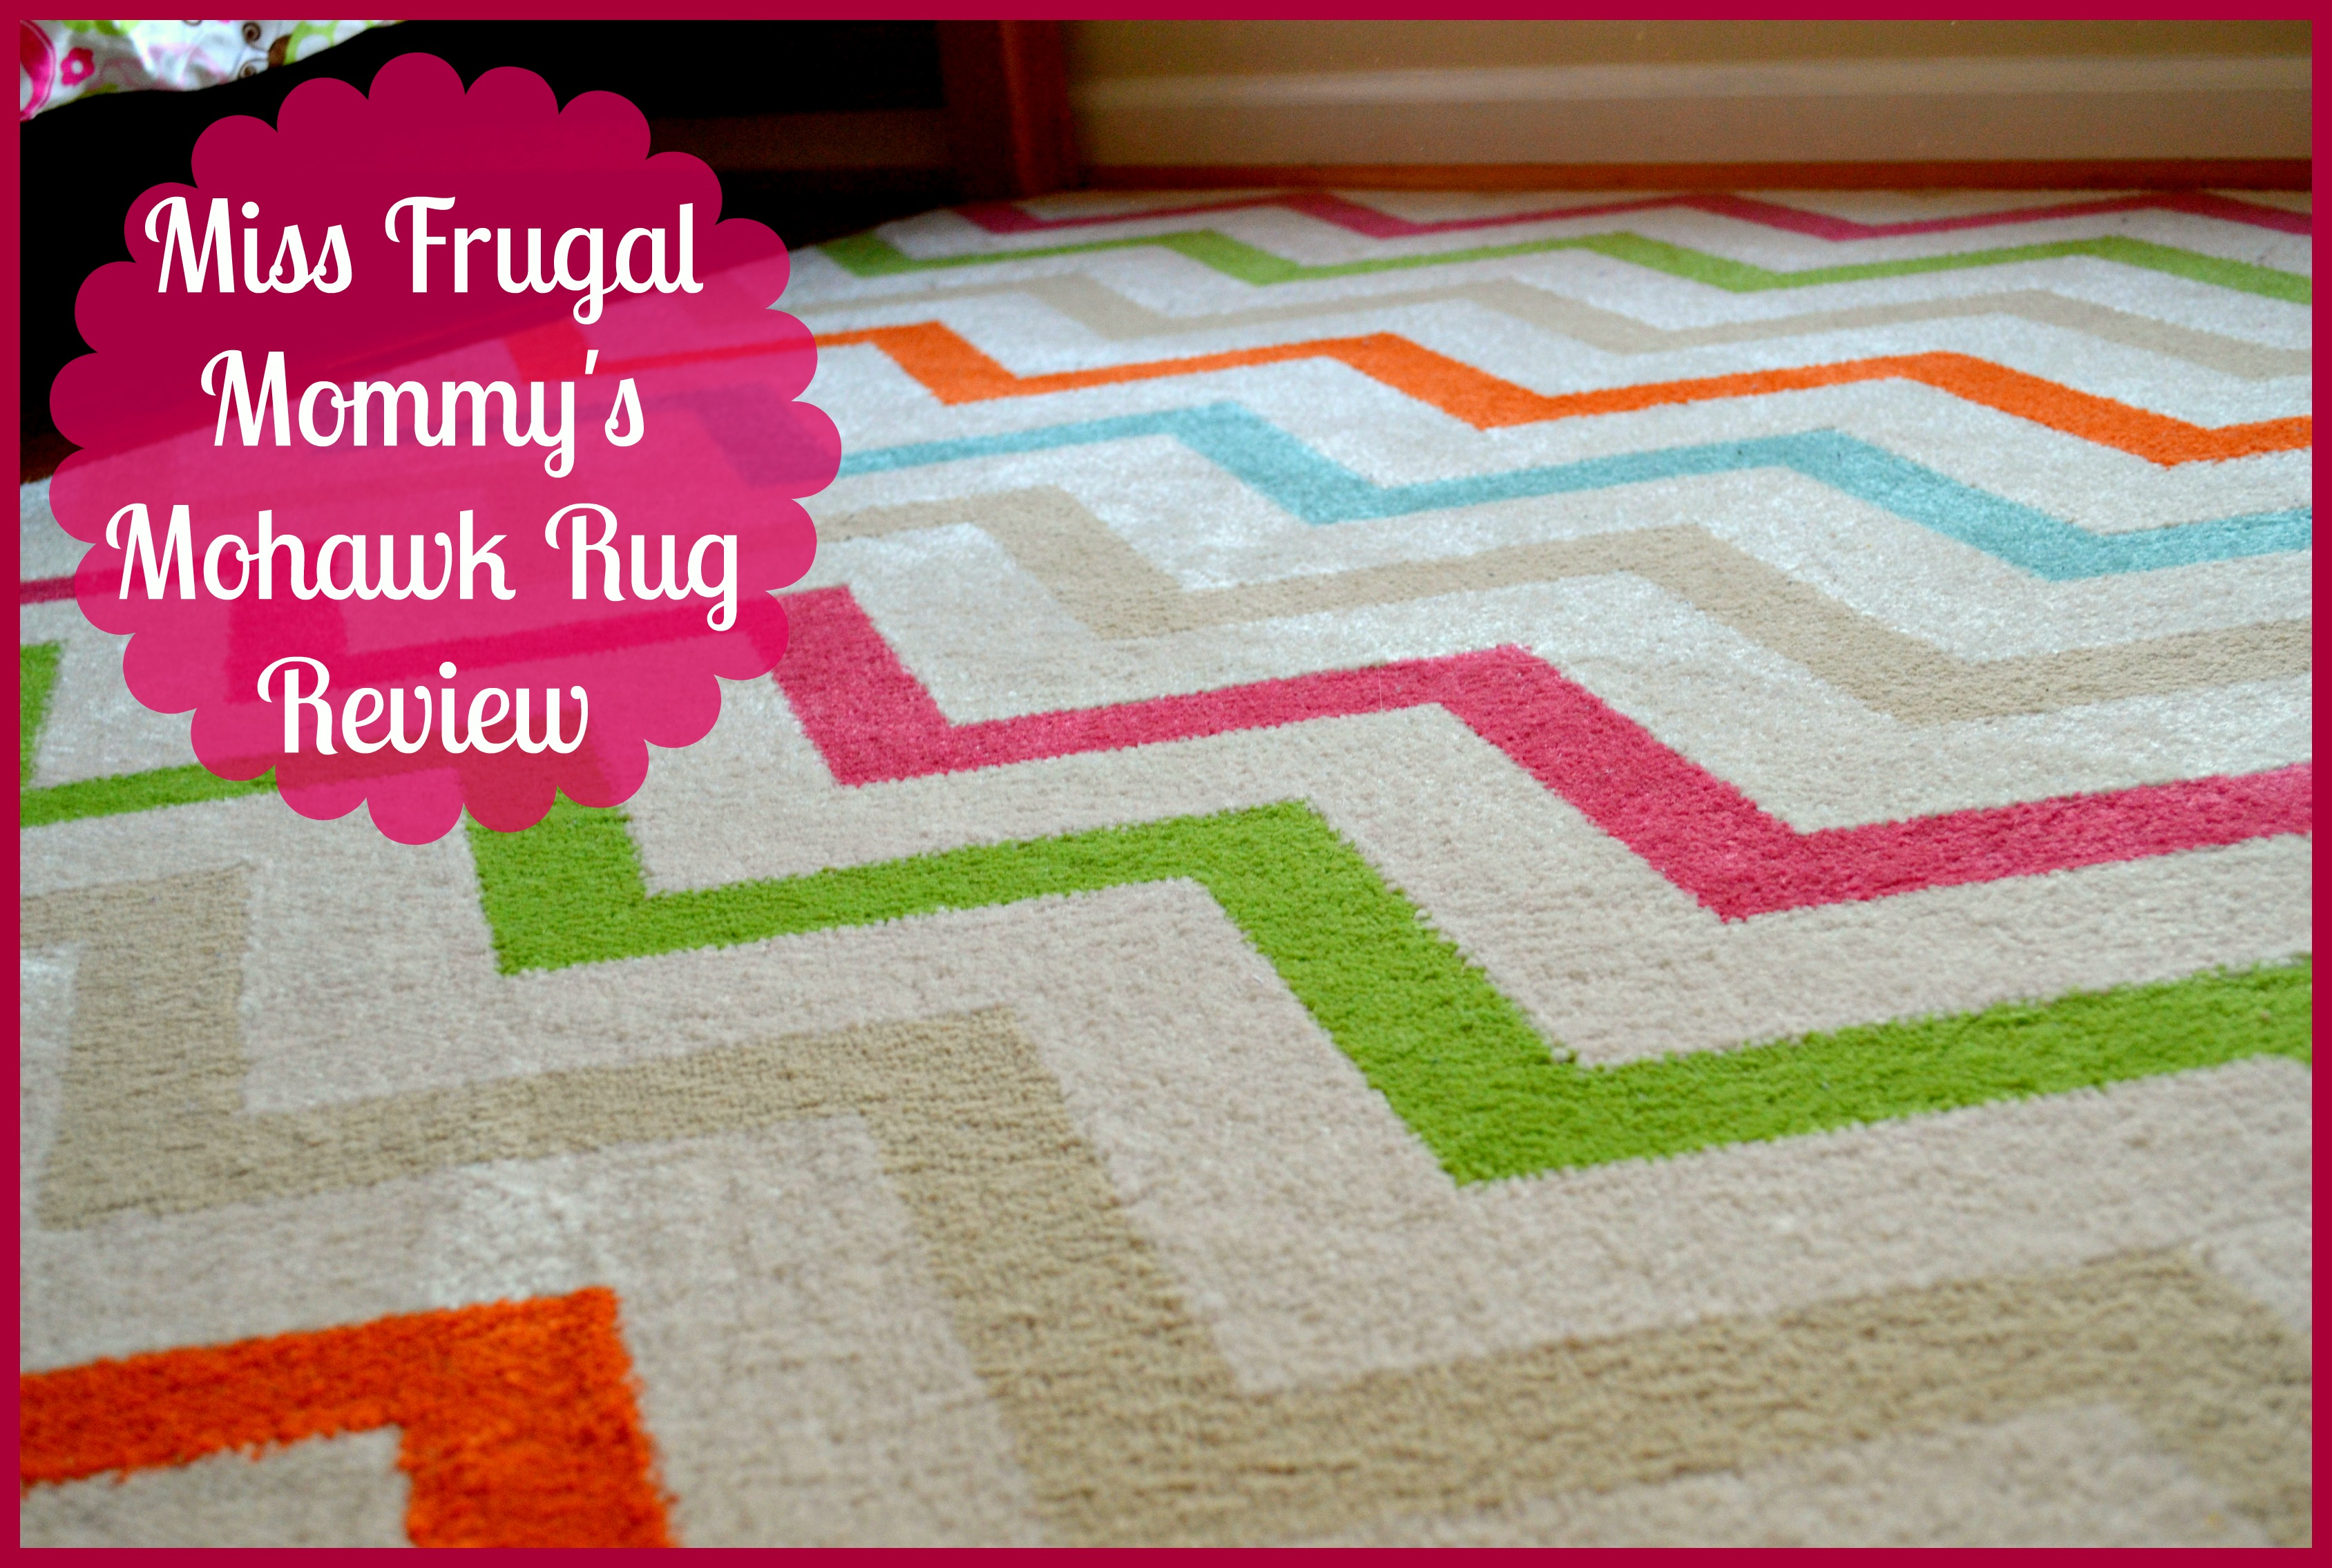 Brighten Up a Room With A New Rug